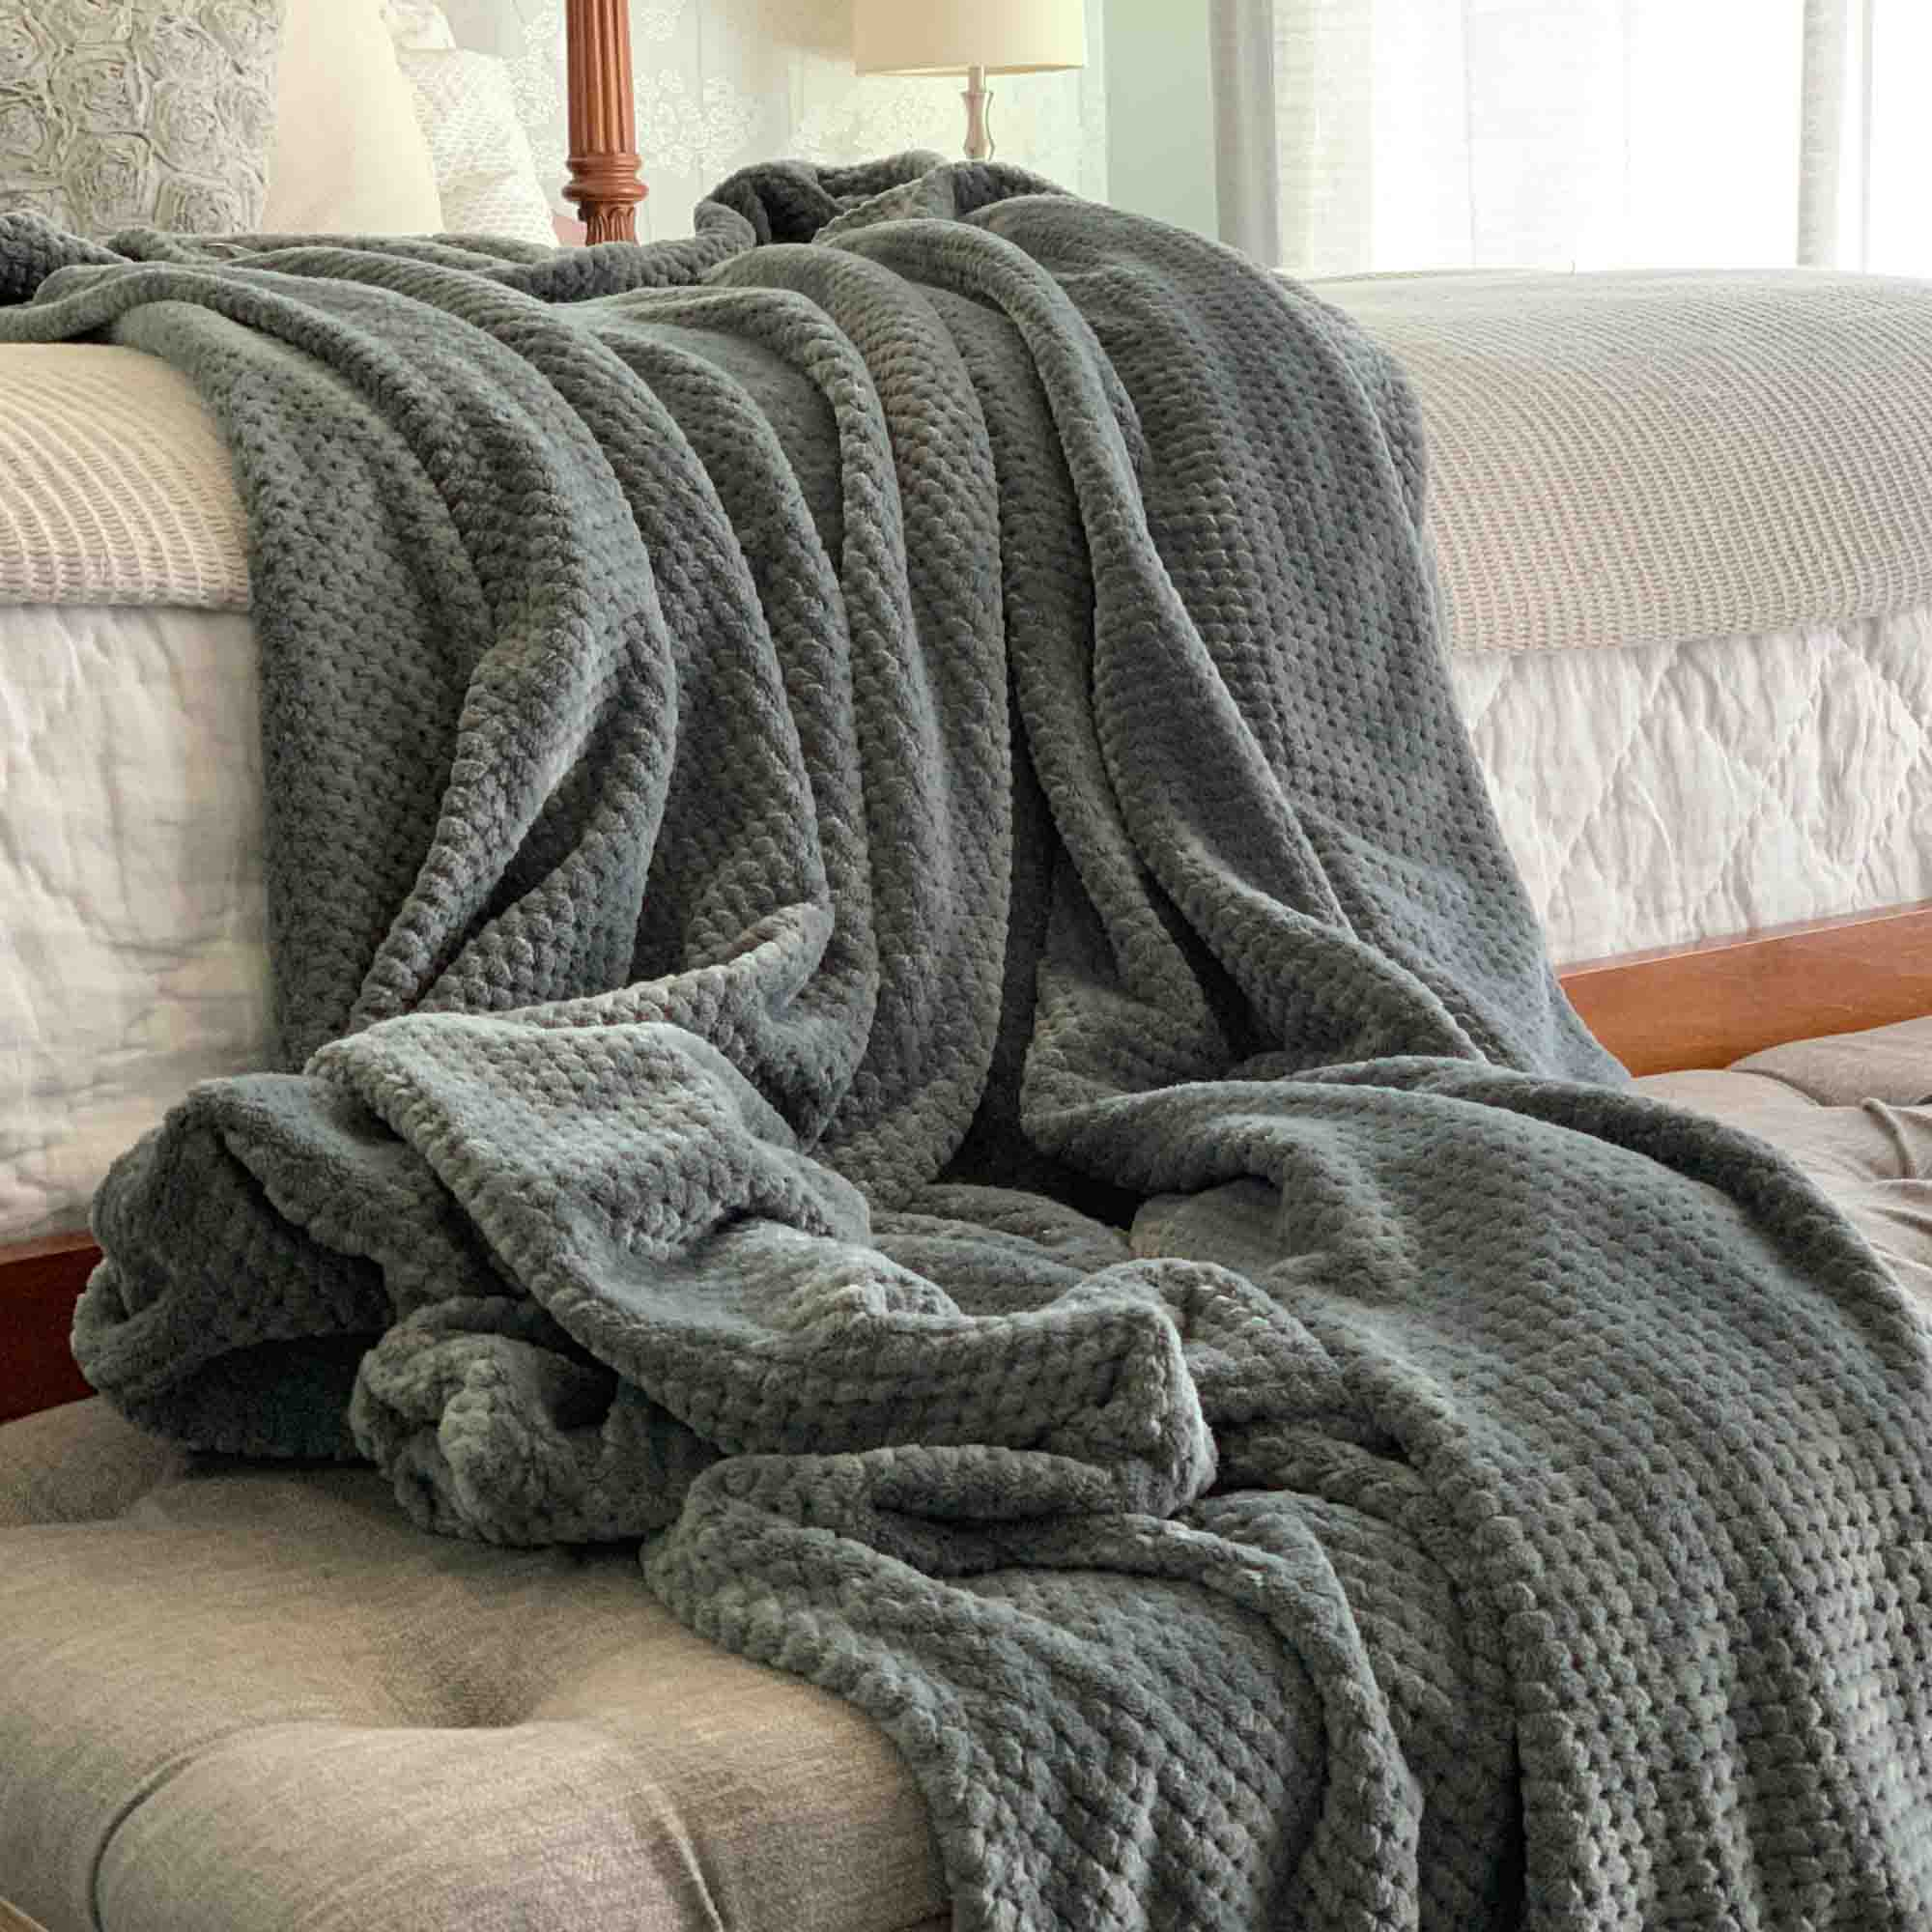 Image of a gray color Microfiber fleece throw blanket draped over a bed and bench